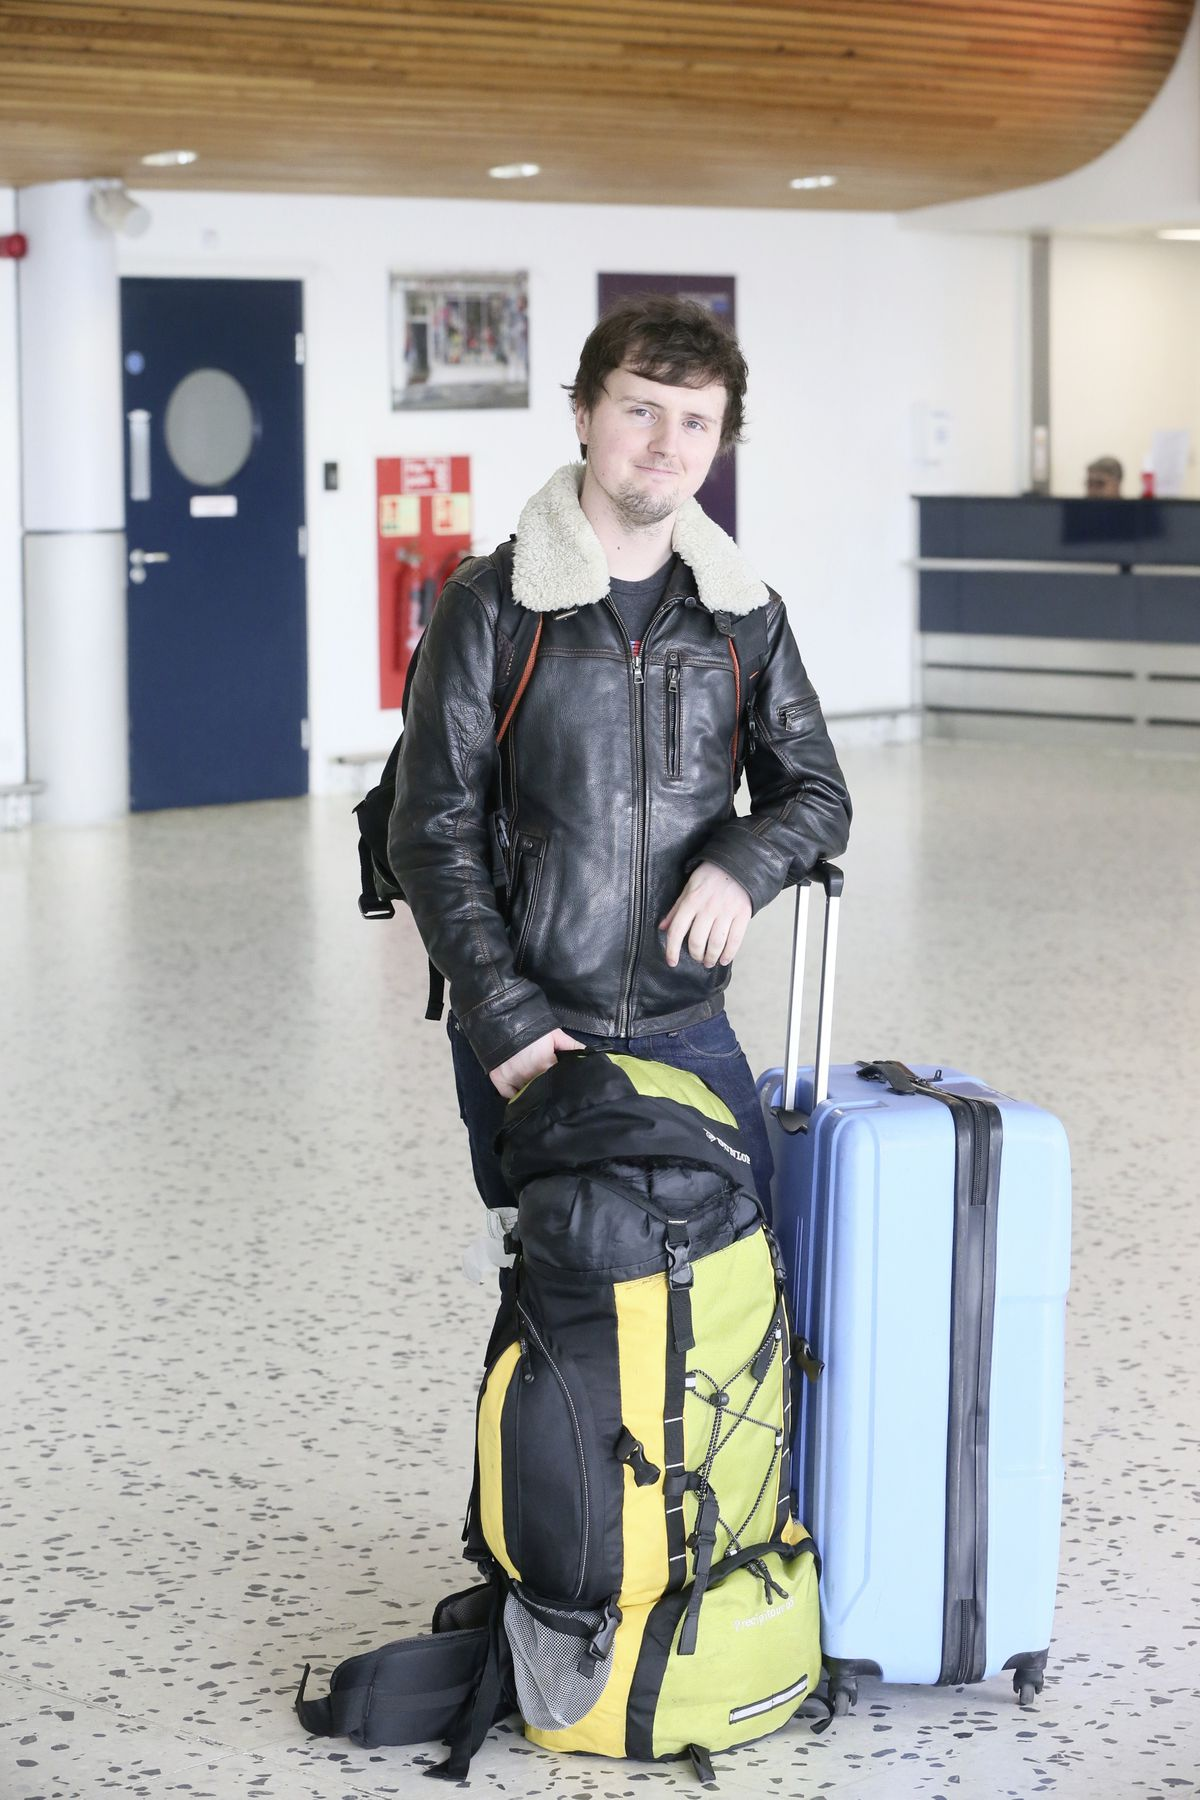 Pic by Adrian Miller 18-03-20 Airport vox pop passengers arriving back home from UK . James Cottam 23. (27535415)